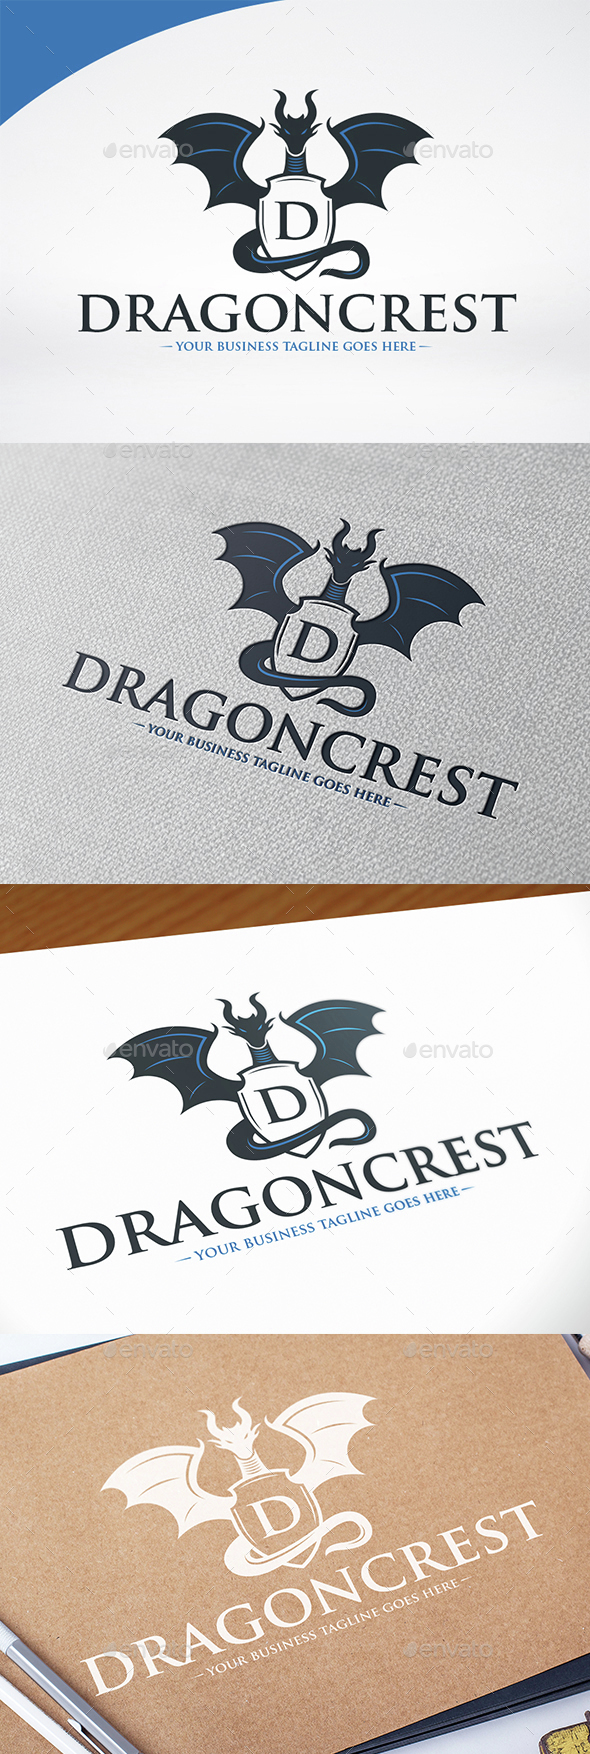 Dragon Crest Logo Template - Crests Logo Templates